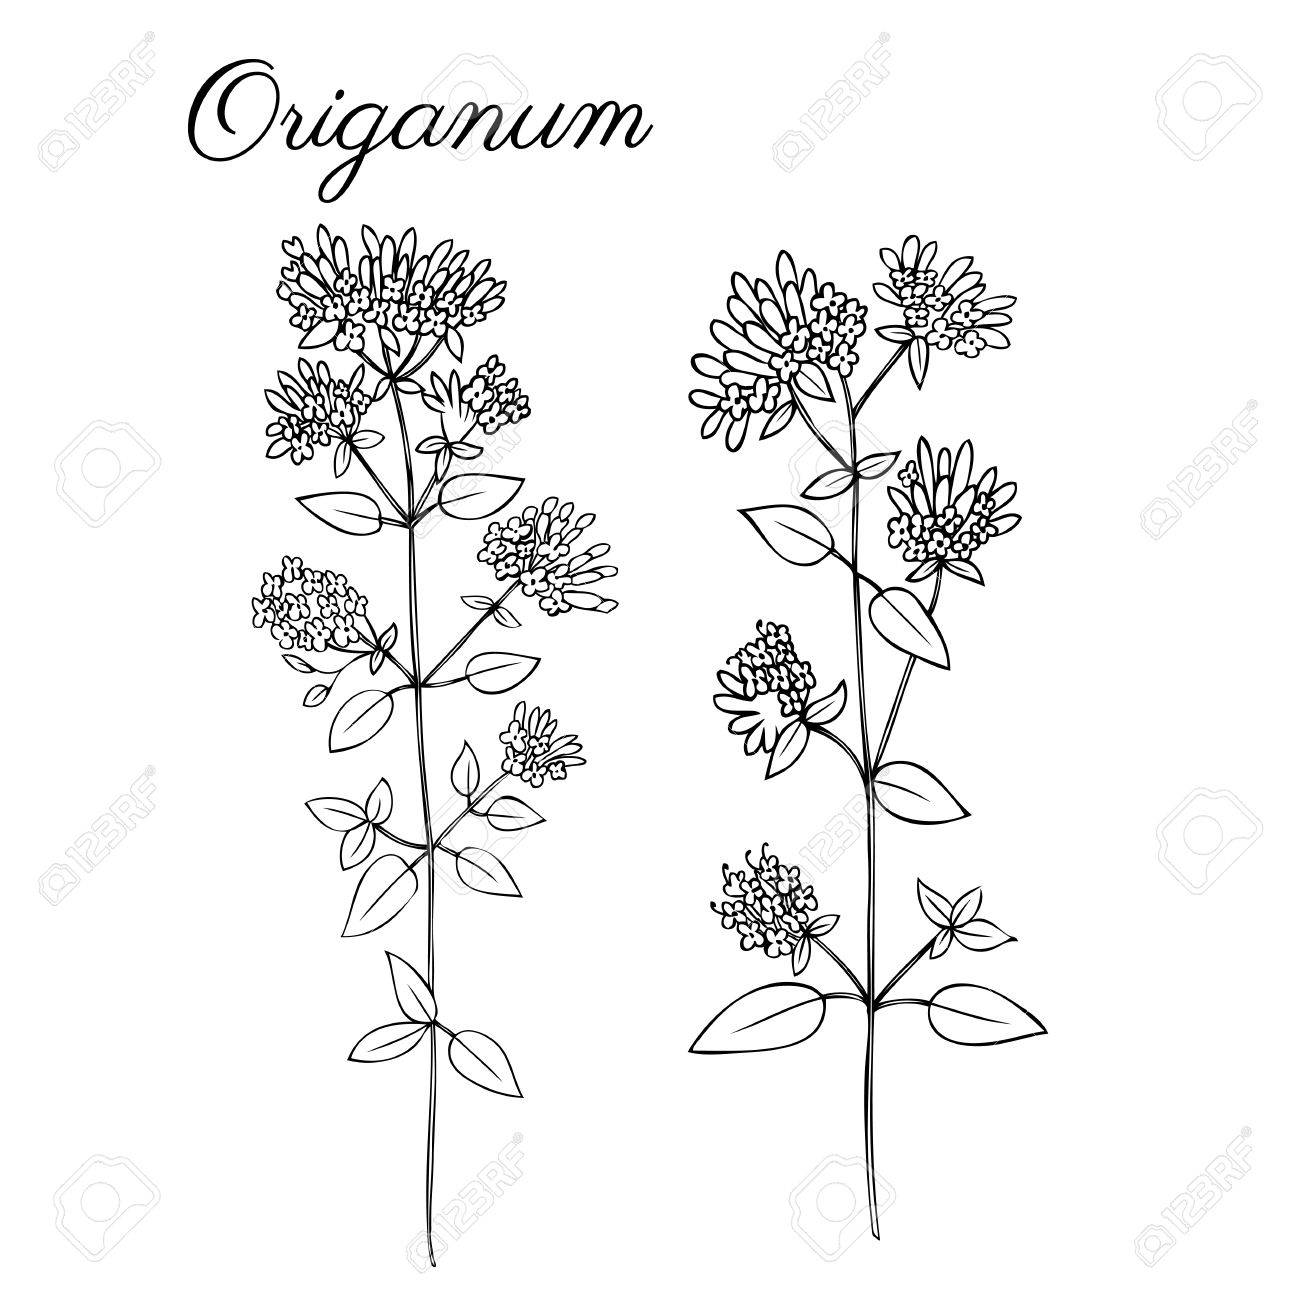 1300x1300 Blossoming Oregano Flowers Vector Ink Doodle Sketch Hand Drawn